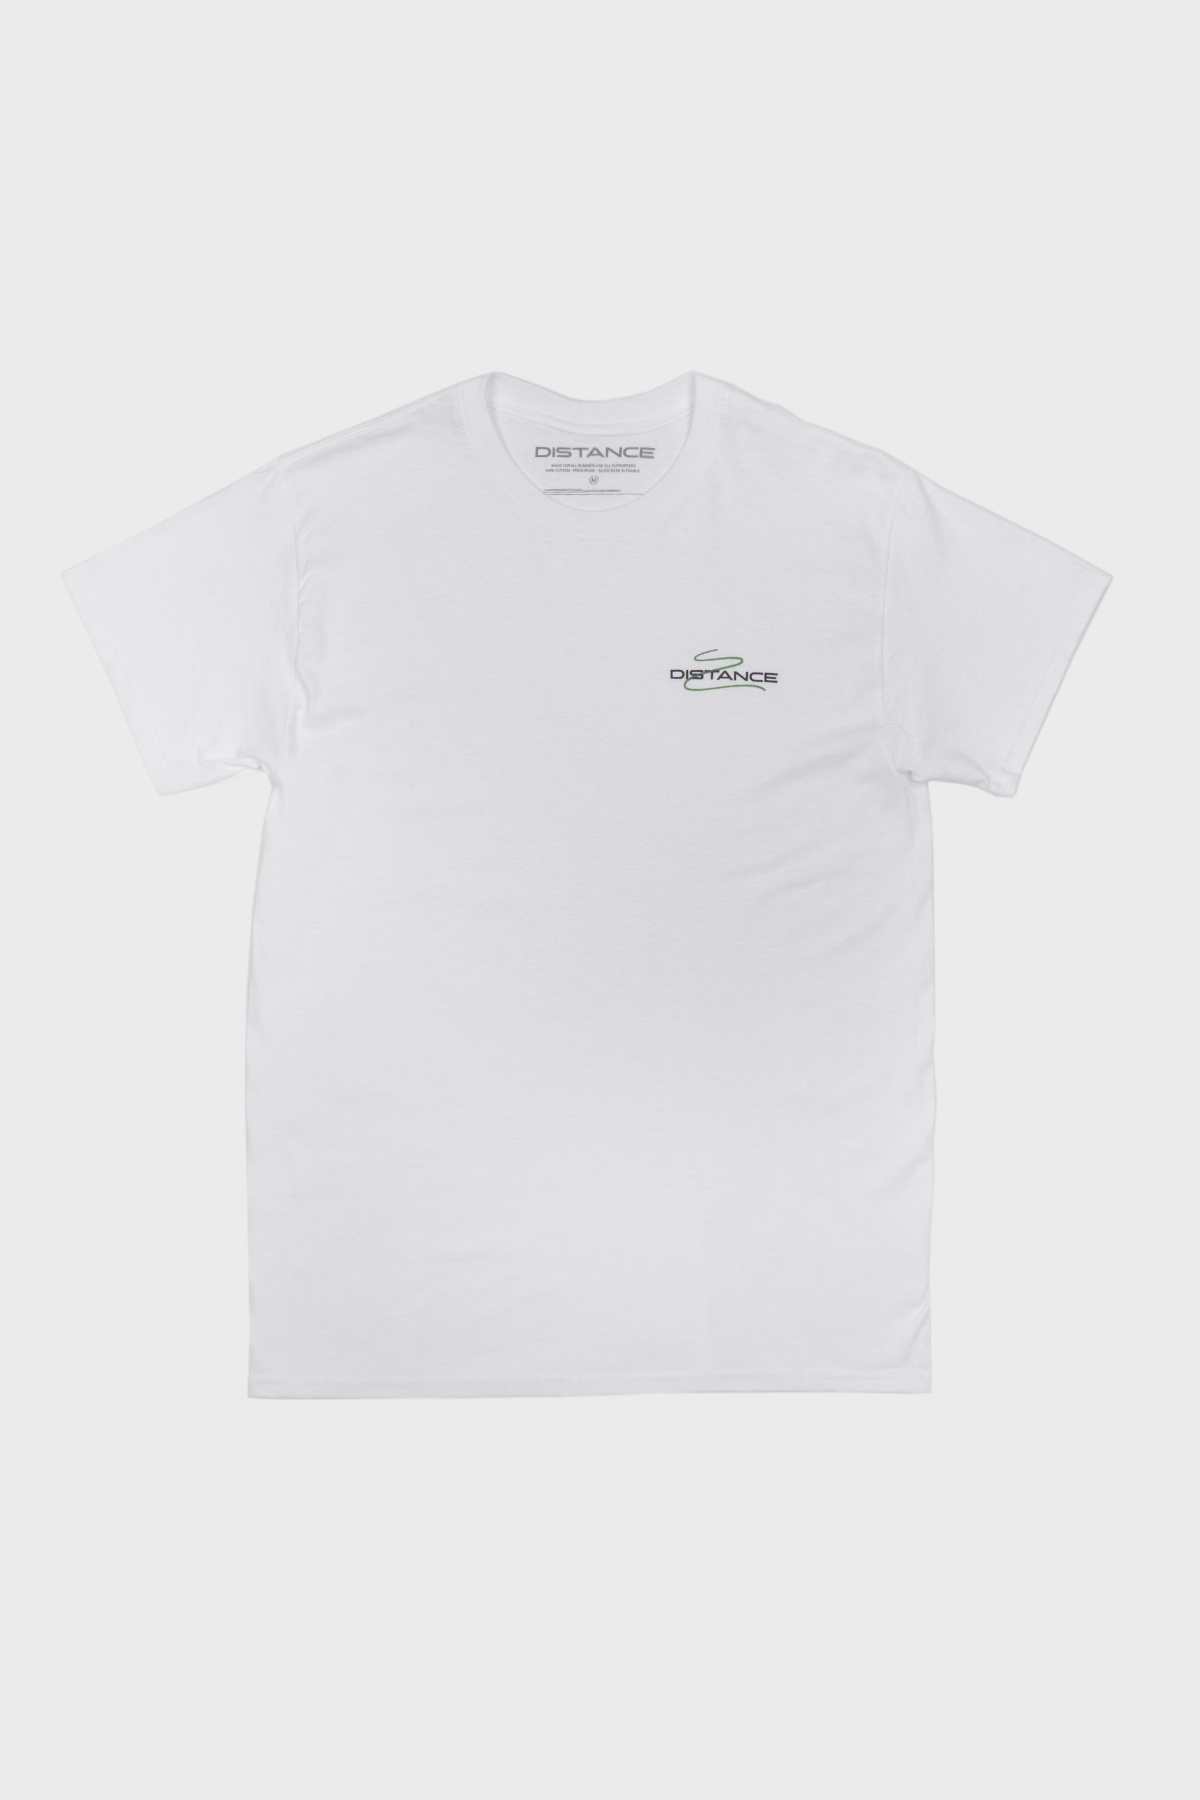 Distance - Squiggle Tee  - white Green